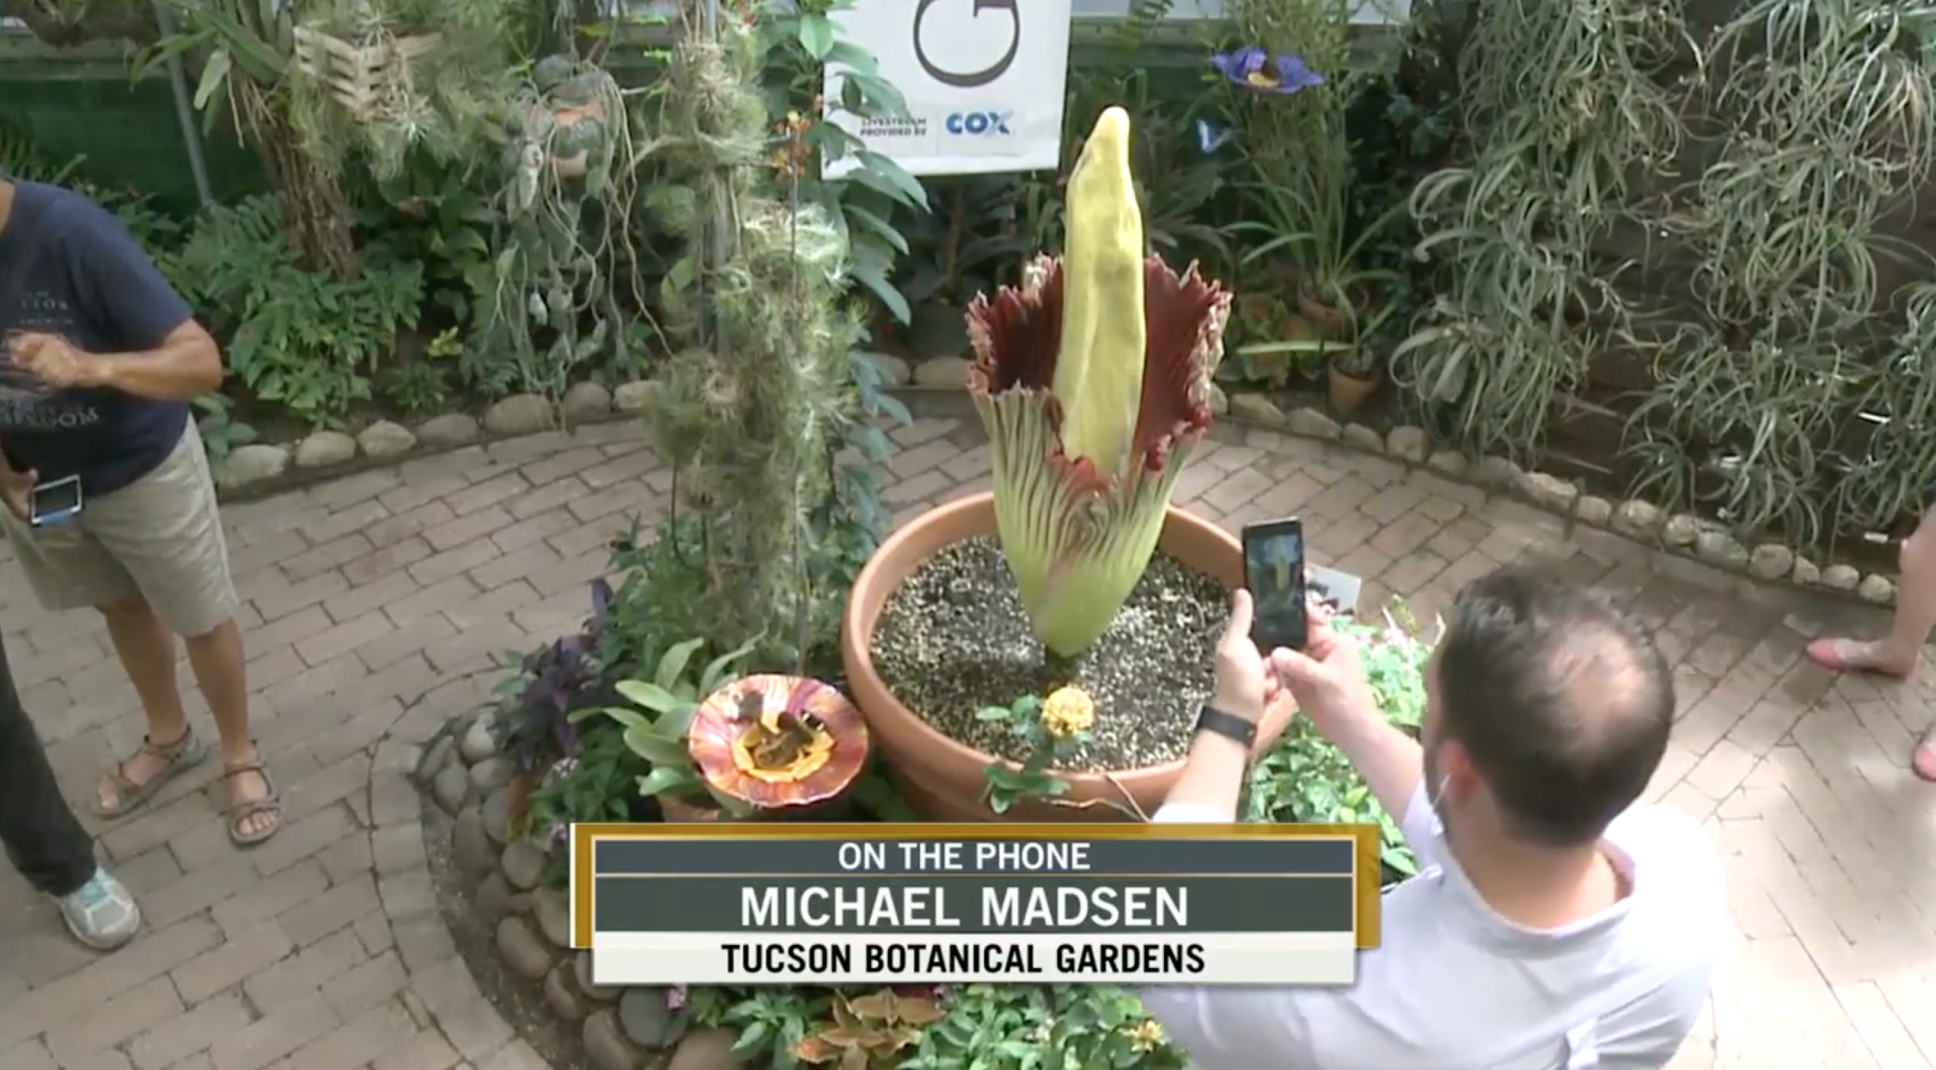 Tucson Botanical Gardens extends hours today  to visit Rosie the 'corpse flower' | Tucson.com